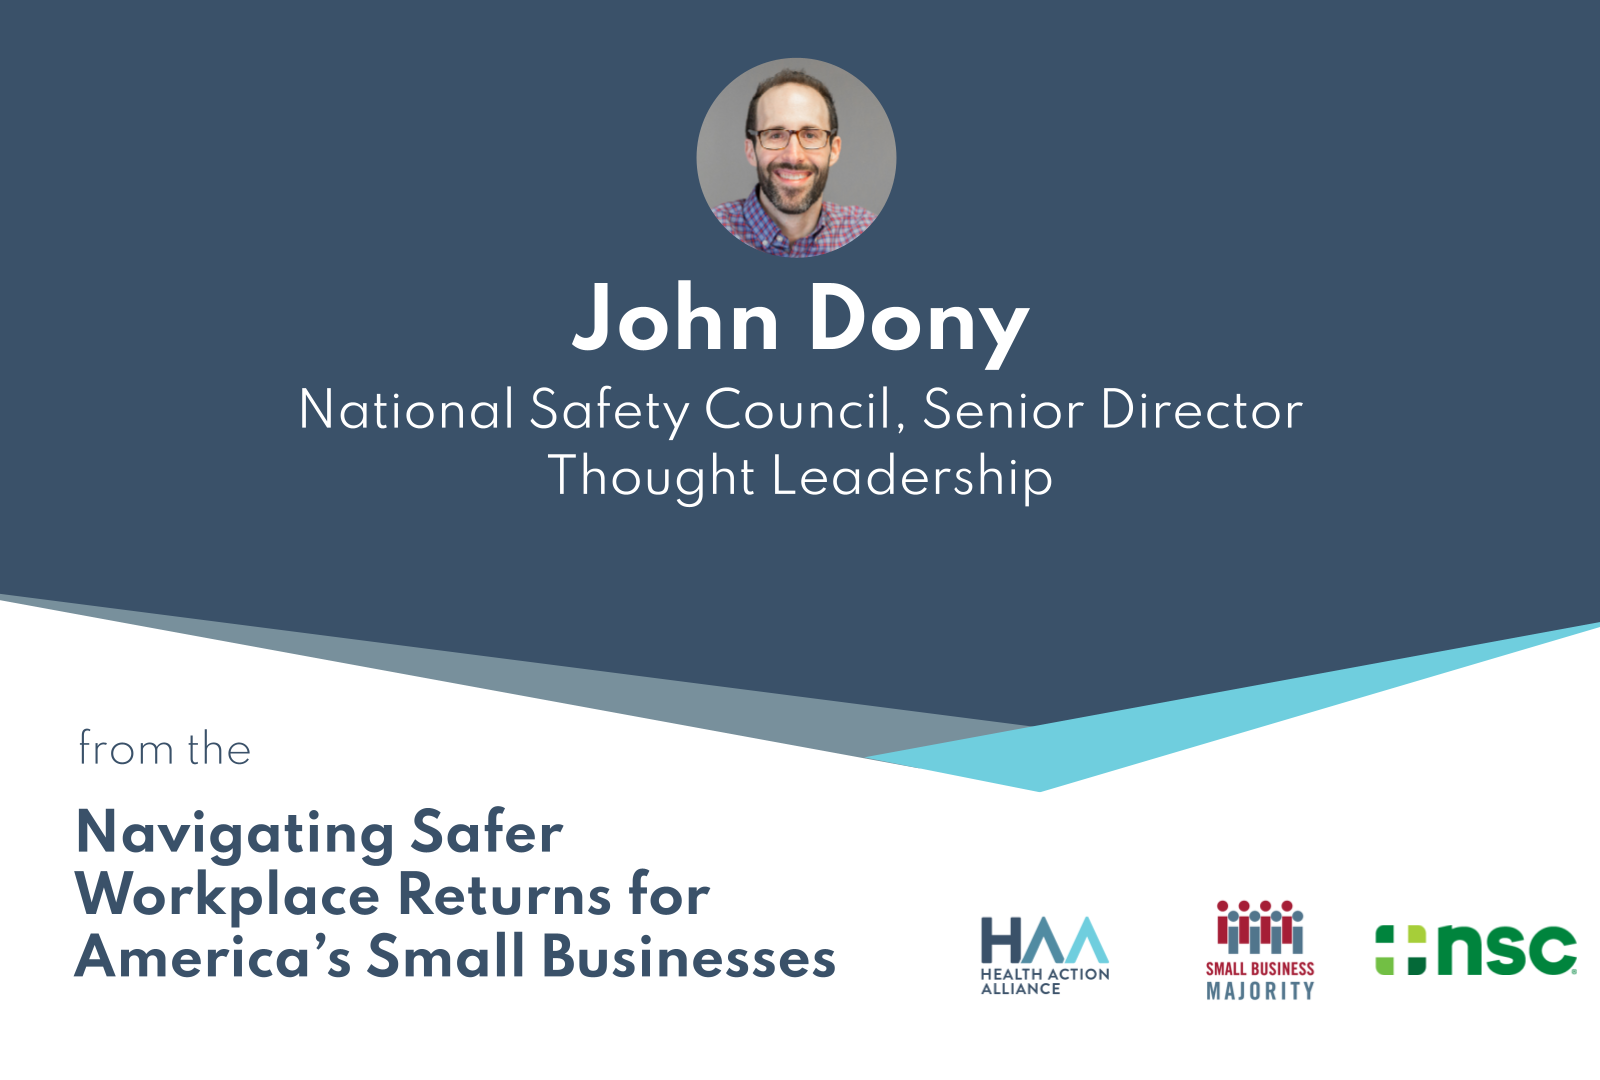 Navigating Safer Workplace Returns for America's Small Businesses – John Dony, NSC